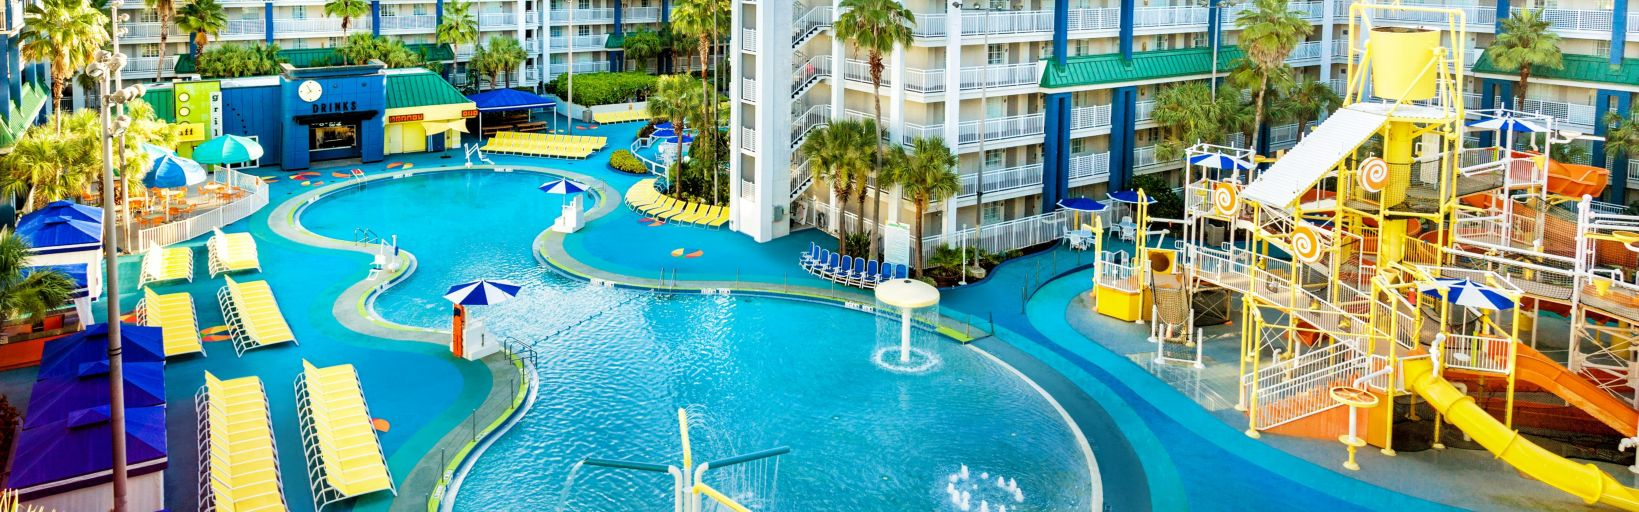 Holiday Inn Waterpark